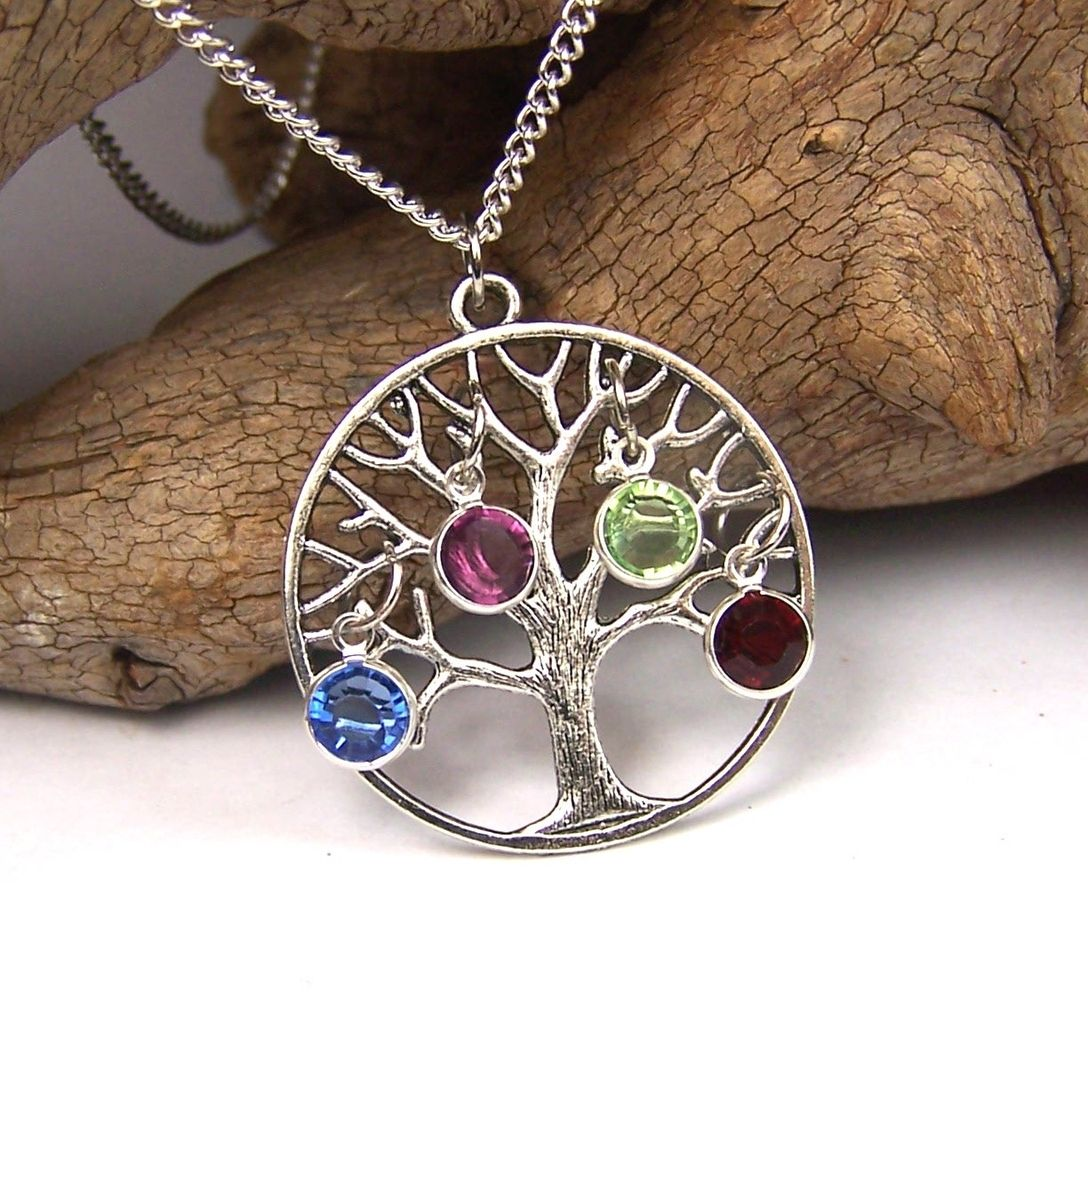 Buy hand crafted personalized family tree necklace pendant with custom made personalized family tree necklace pendant with birthstones swarovski crystals aloadofball Image collections